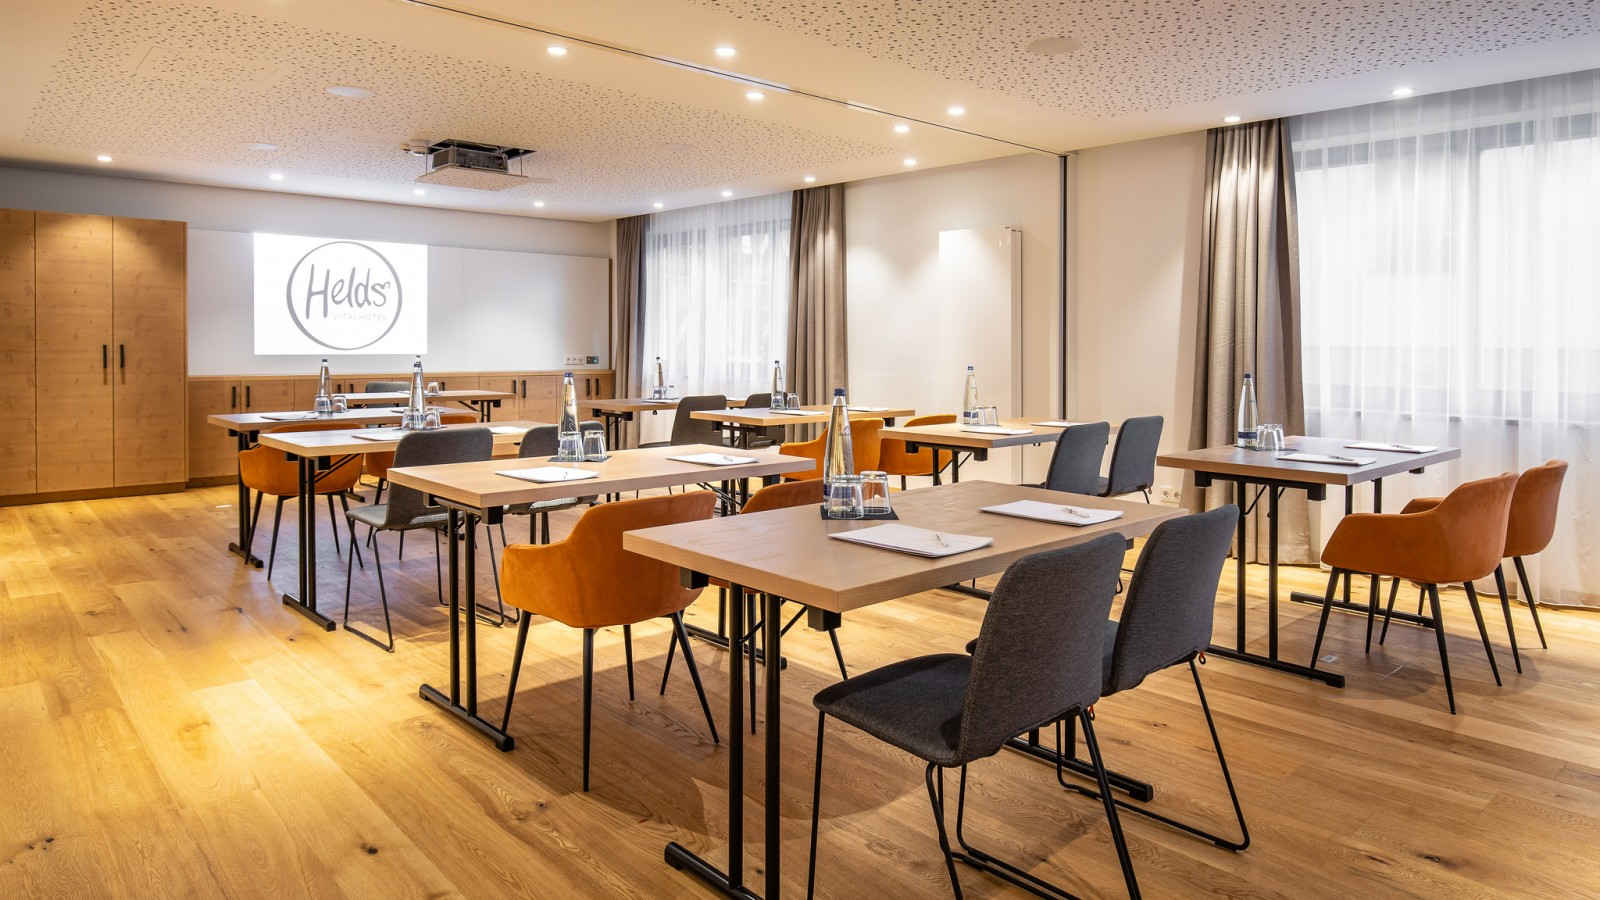 HELDs Vitalhotel | Conference Room Max&Moritz